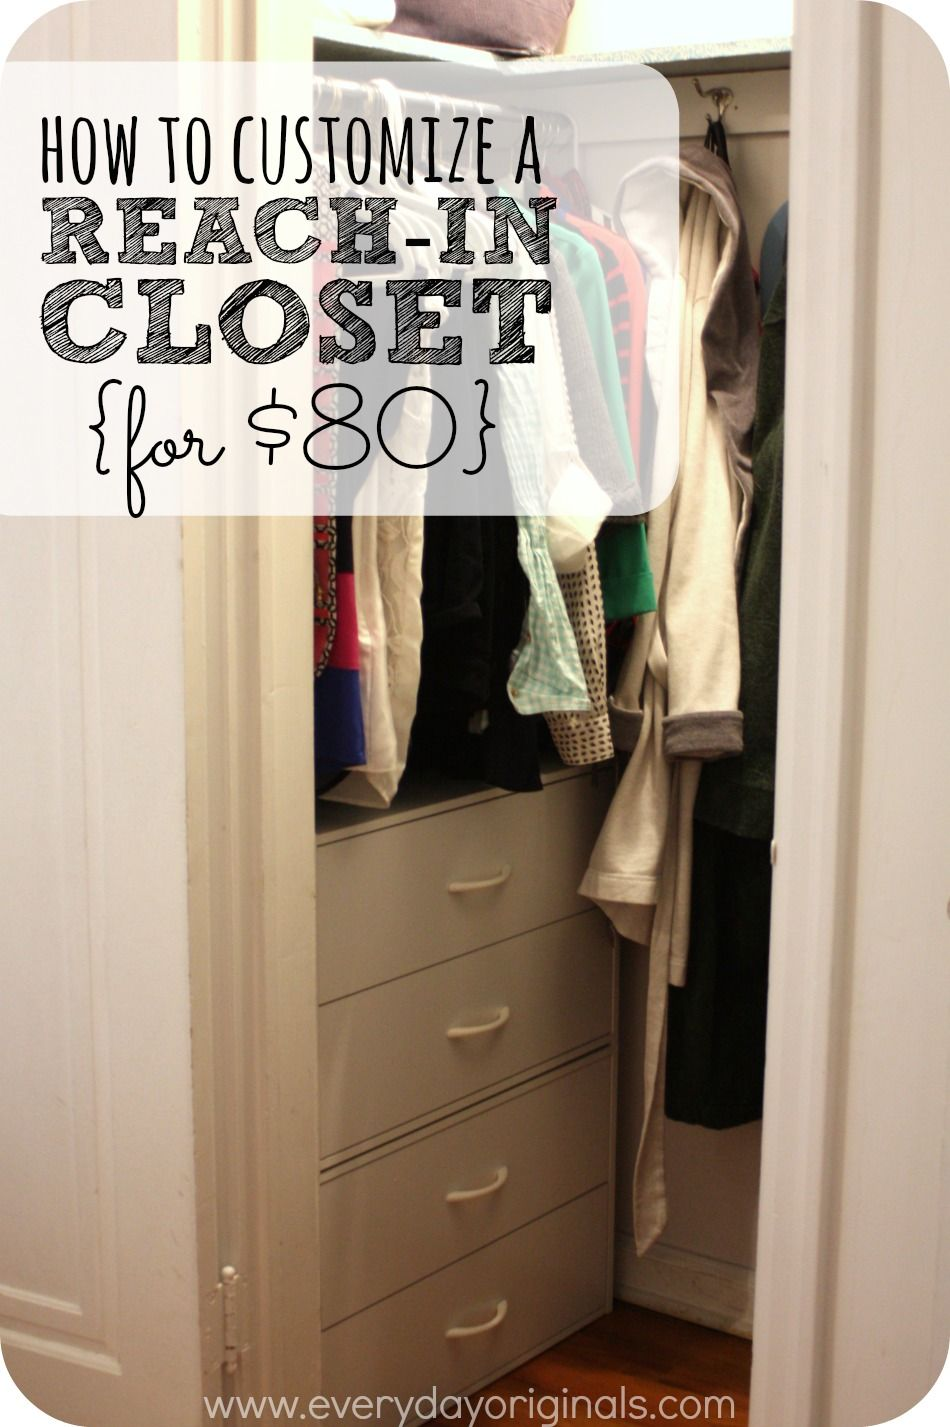 How To Customize A Reach In Closet For $80. Many Old Houses Just Have